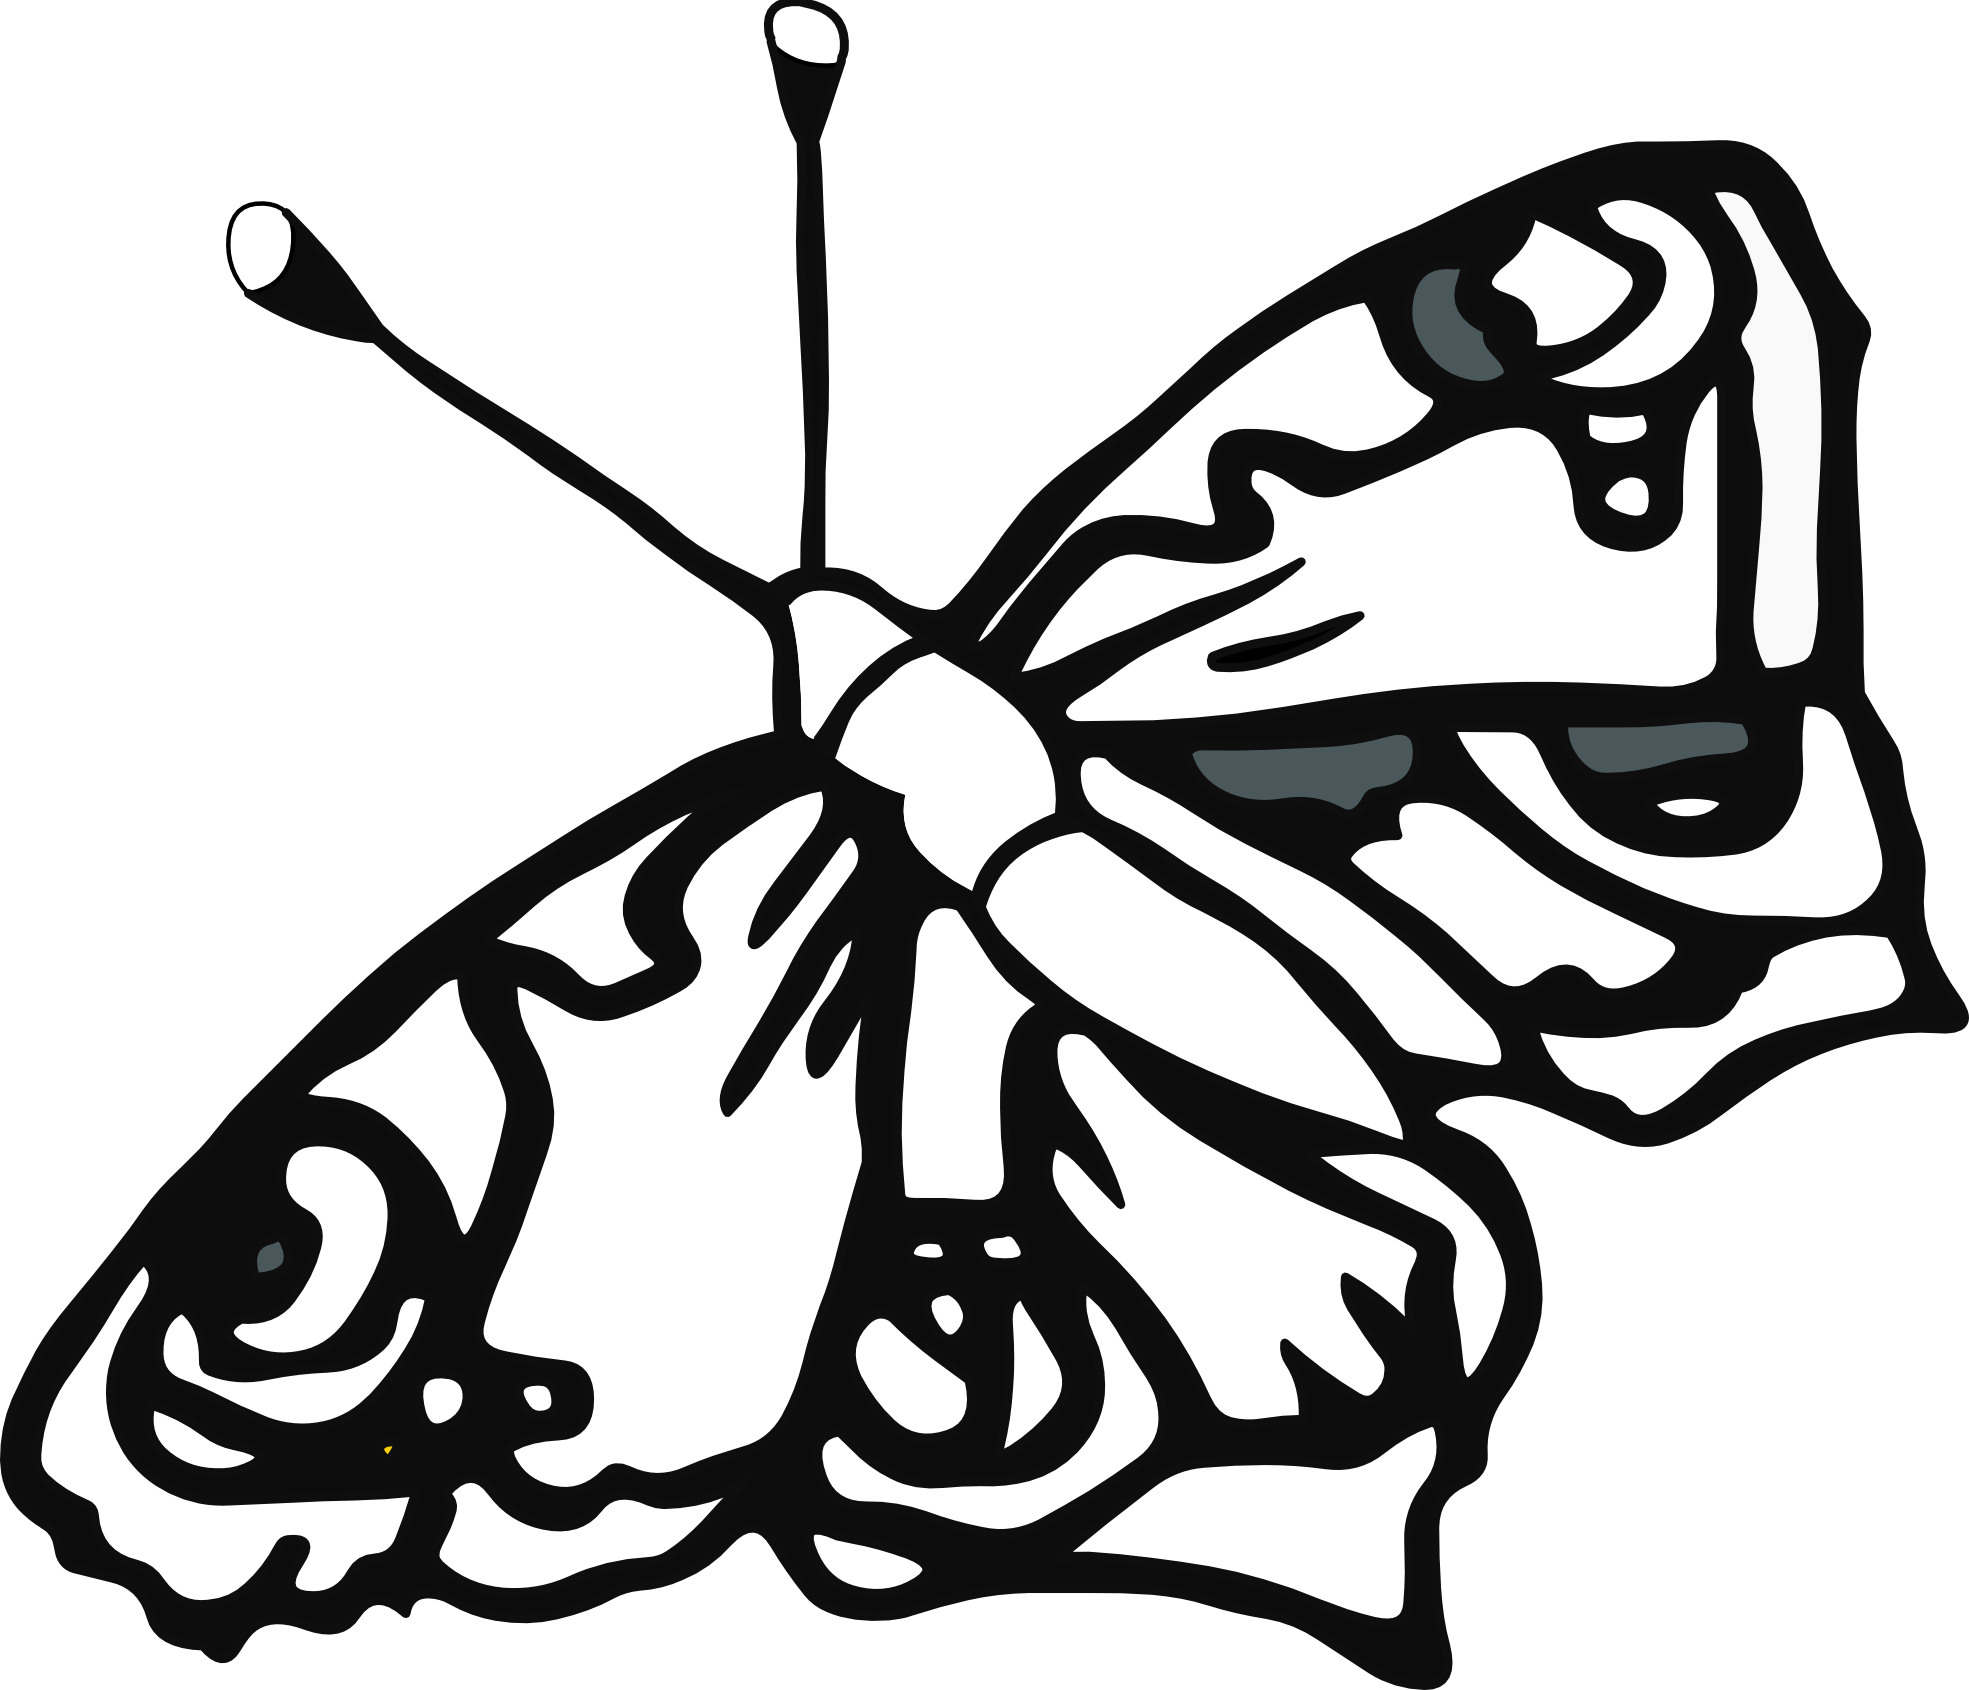 butterfly 58 black white line art tatoo tattoo SVG